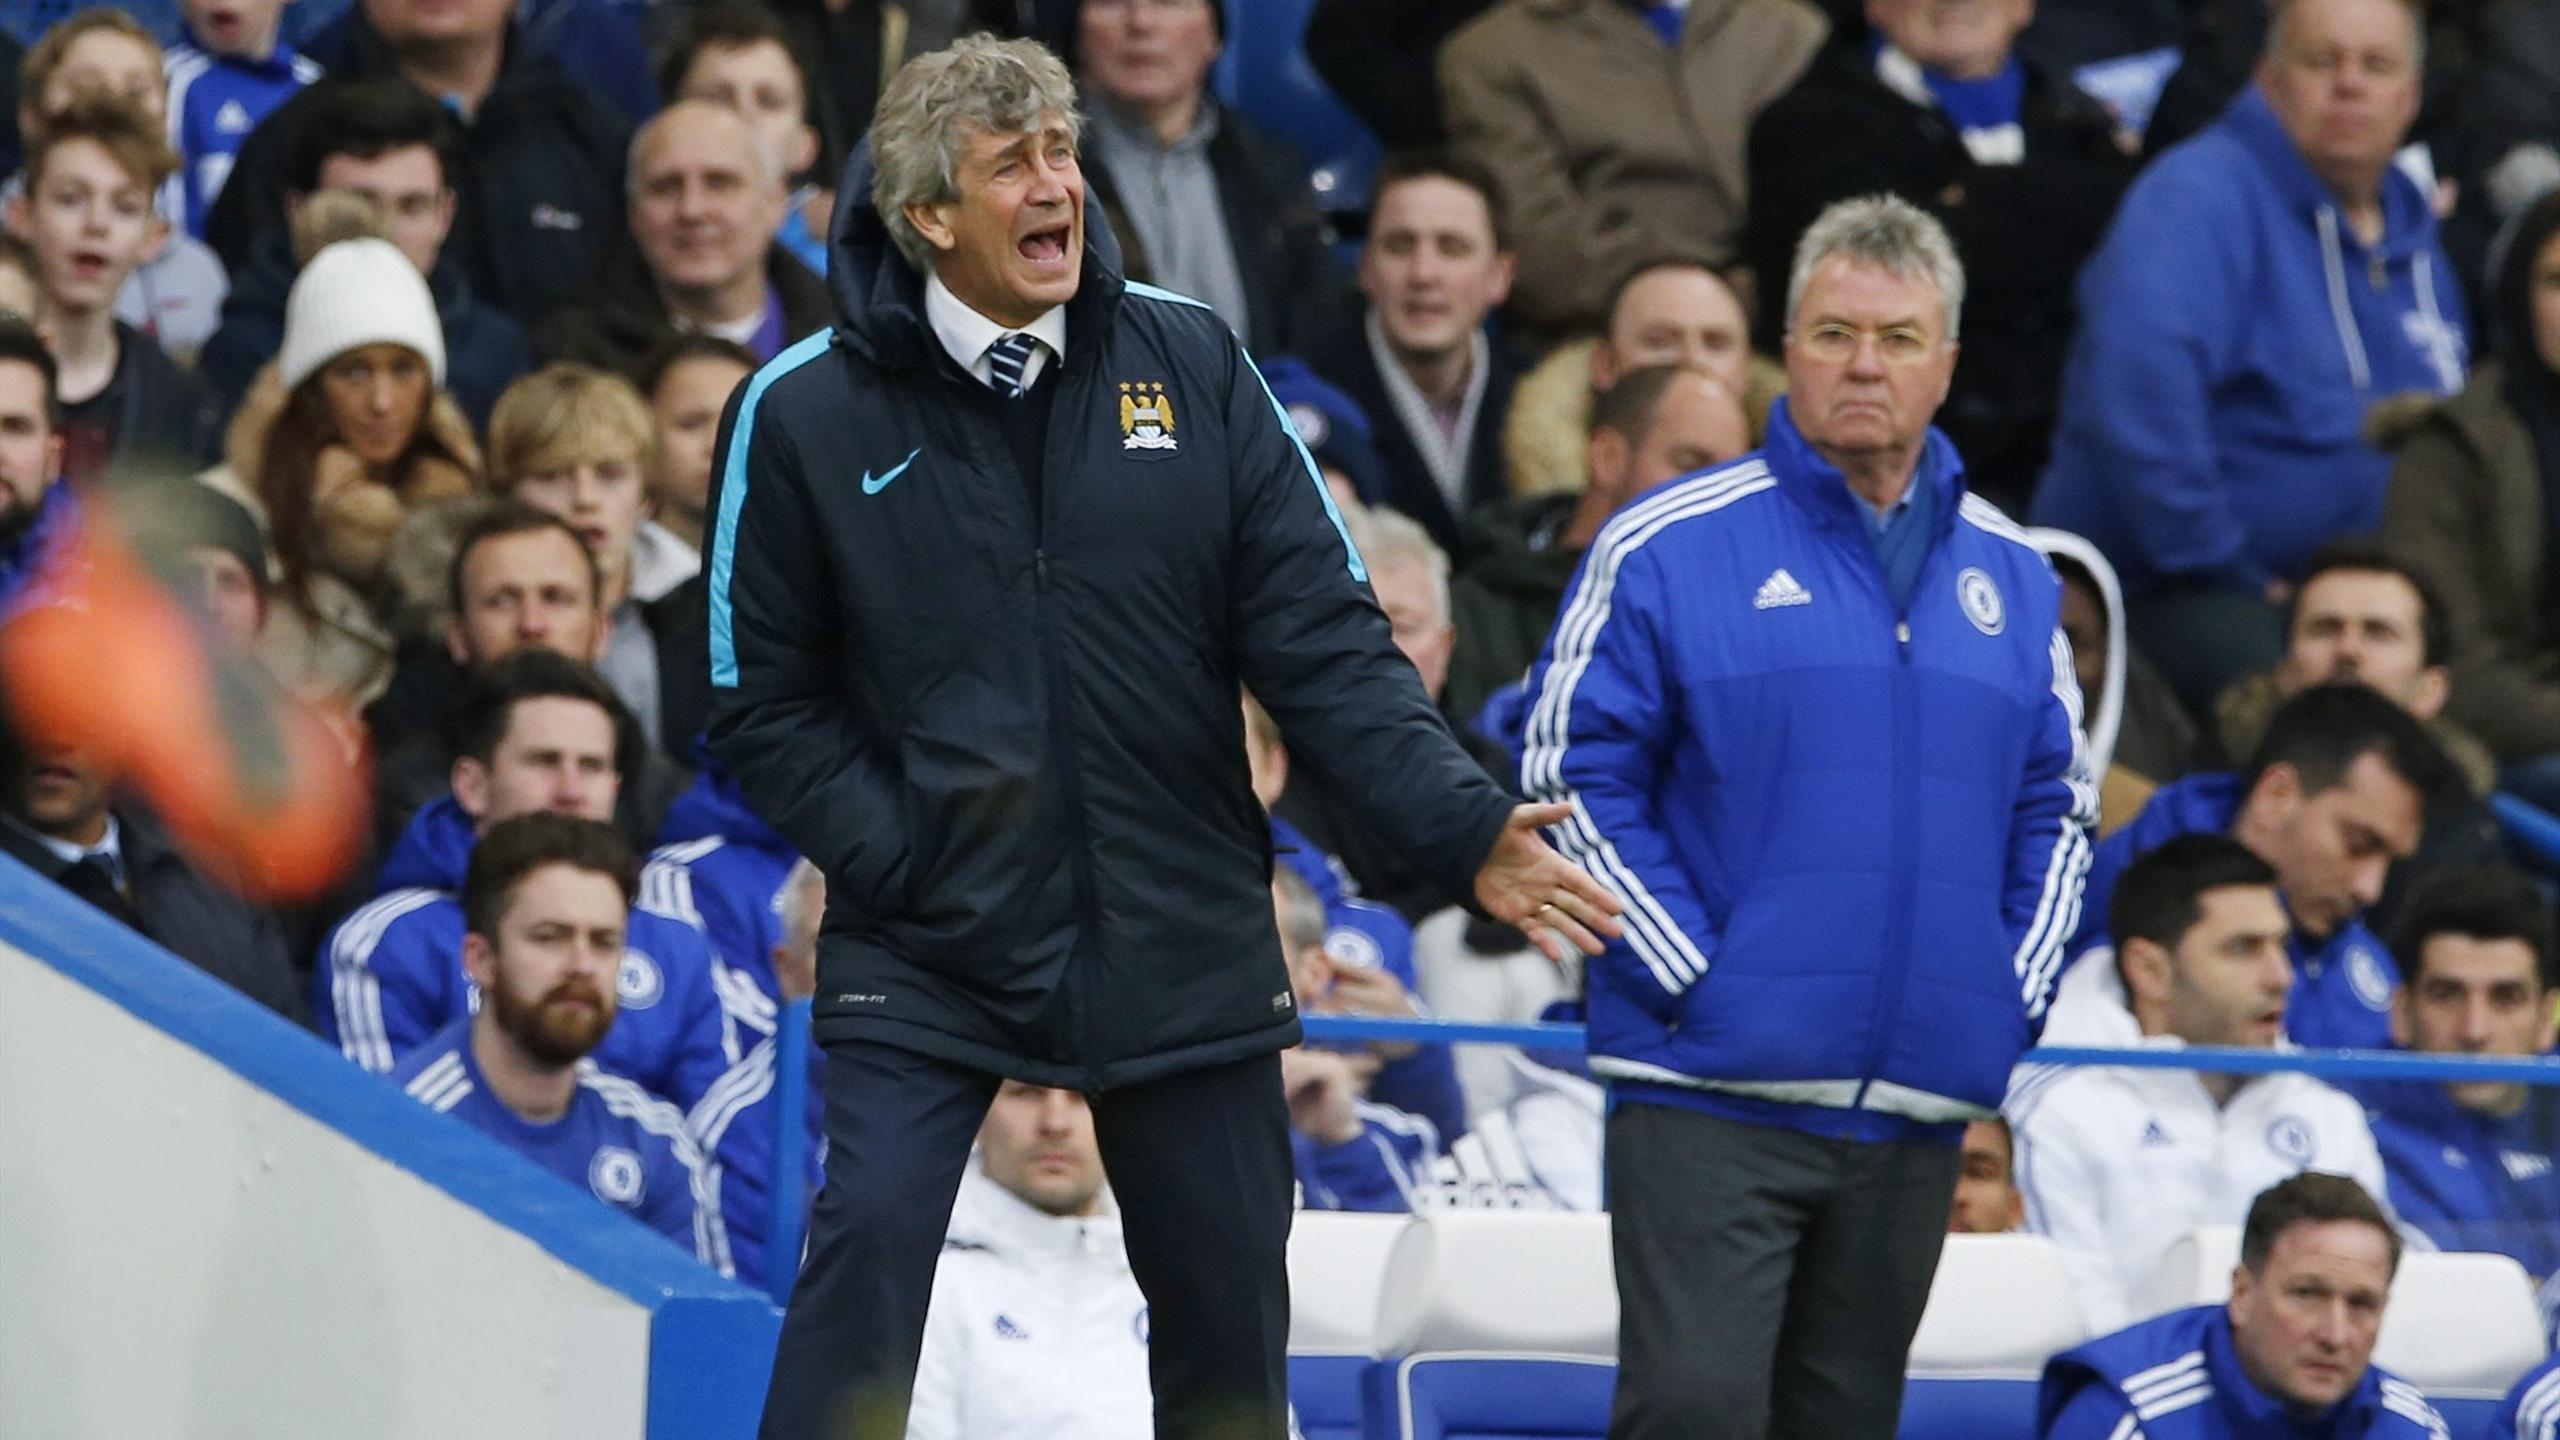 Manchester City manager Manuel Pellegrini and Chelsea manager Guus Hiddink